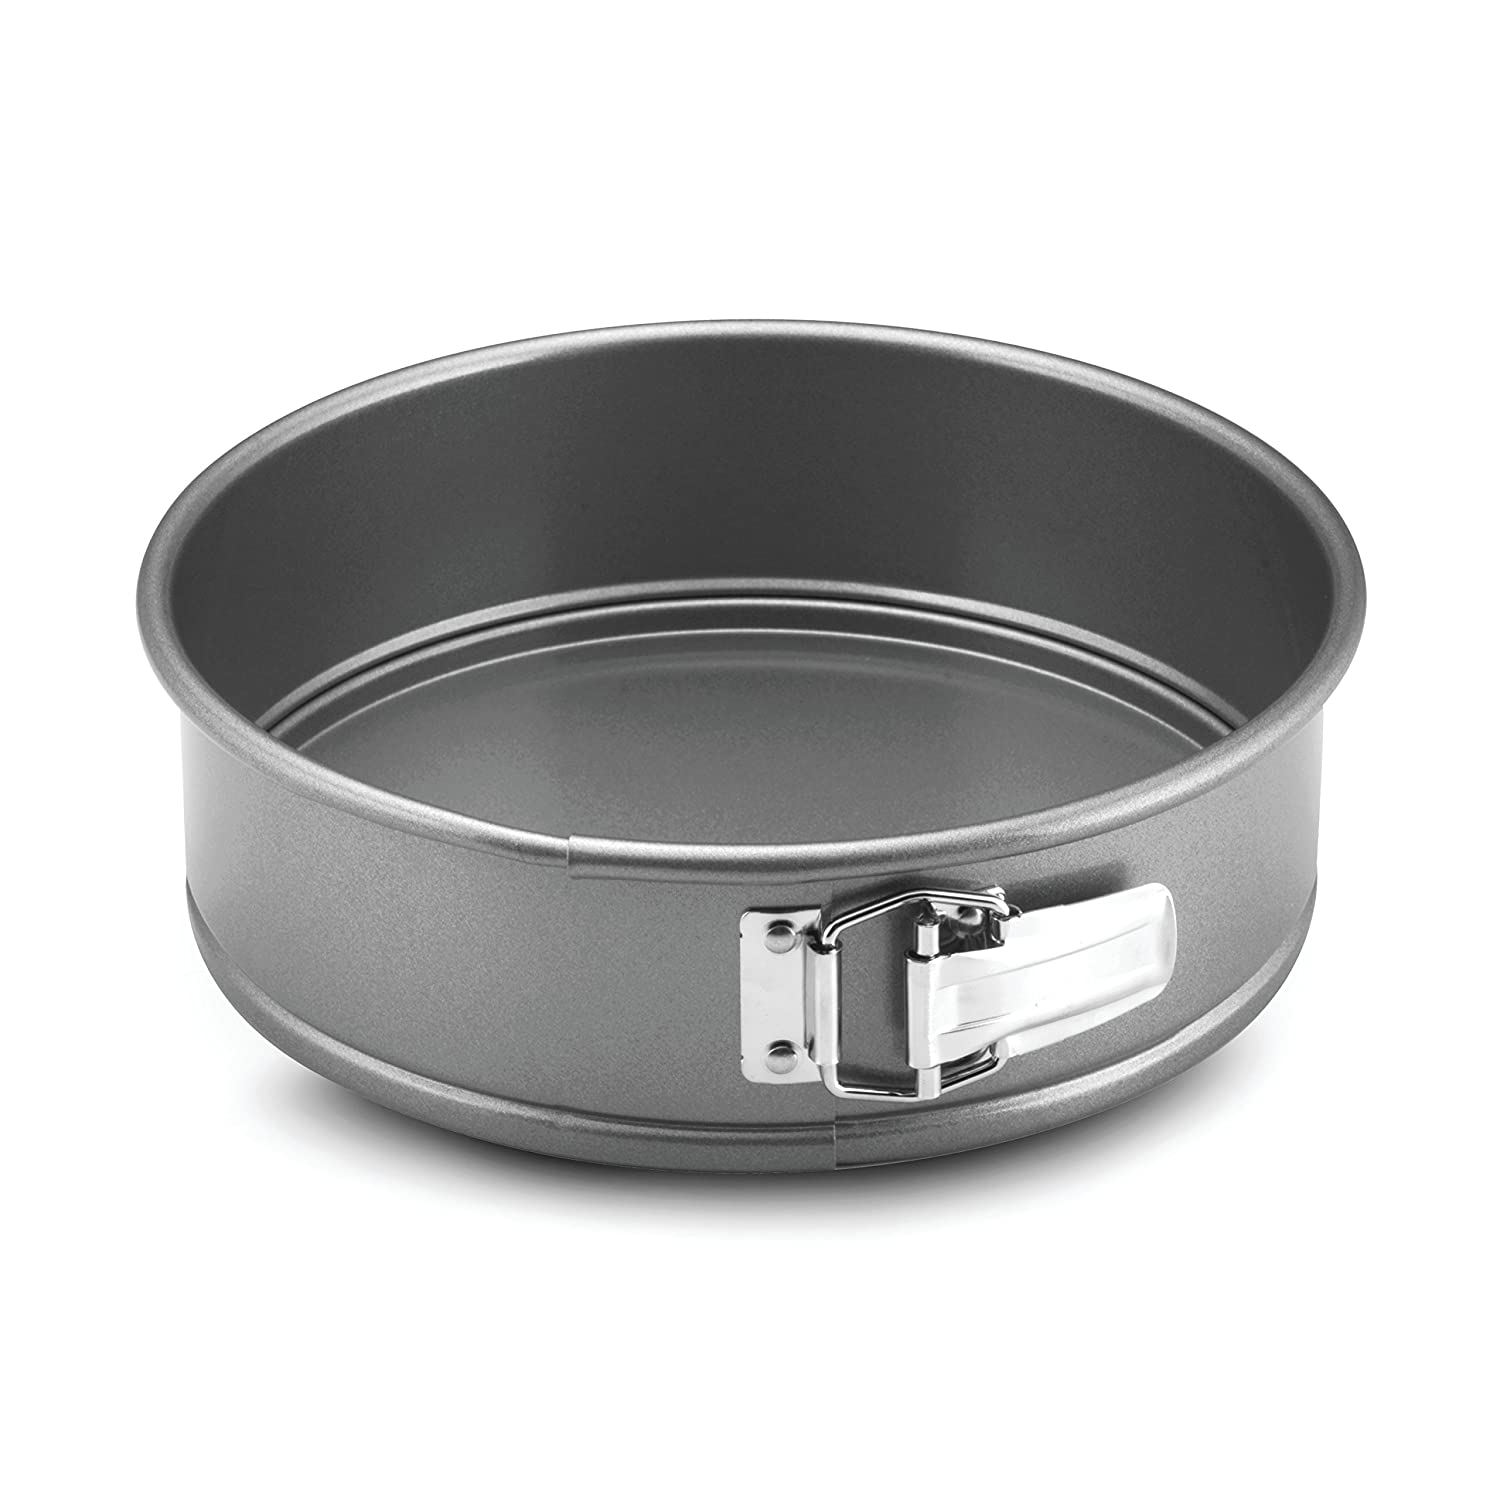 Anolon Advanced Nonstick Bakeware 9-Inch Square Springform Dessert Pan, Gray with Silicone Grip Meyer 57991